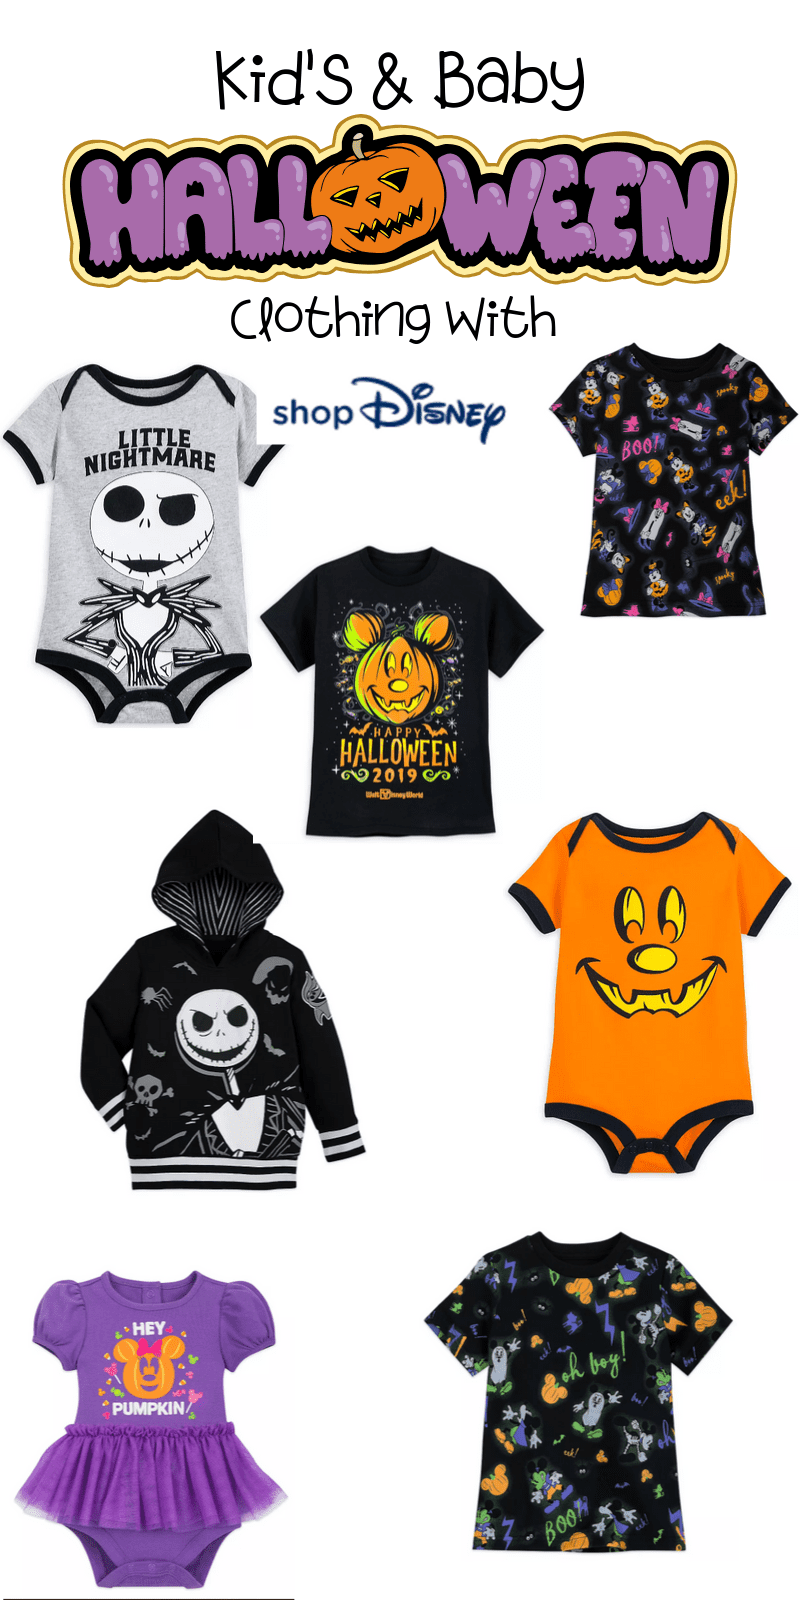 Here are the best in Disney Halloween Clothing for Kids & Babies. This fantastic post rounds up the spooky and adorableness of ShopDisney's Halloween Collection for 2019.  #ad @ShopDisney #halloween2019 #disney #disneylove #disneymagic #waltdisney #disneyprincess #mickeymouse #disneyphoto #disneylife #disneyfan #mickey #disneyaddict #disnerd #starwars #halloween